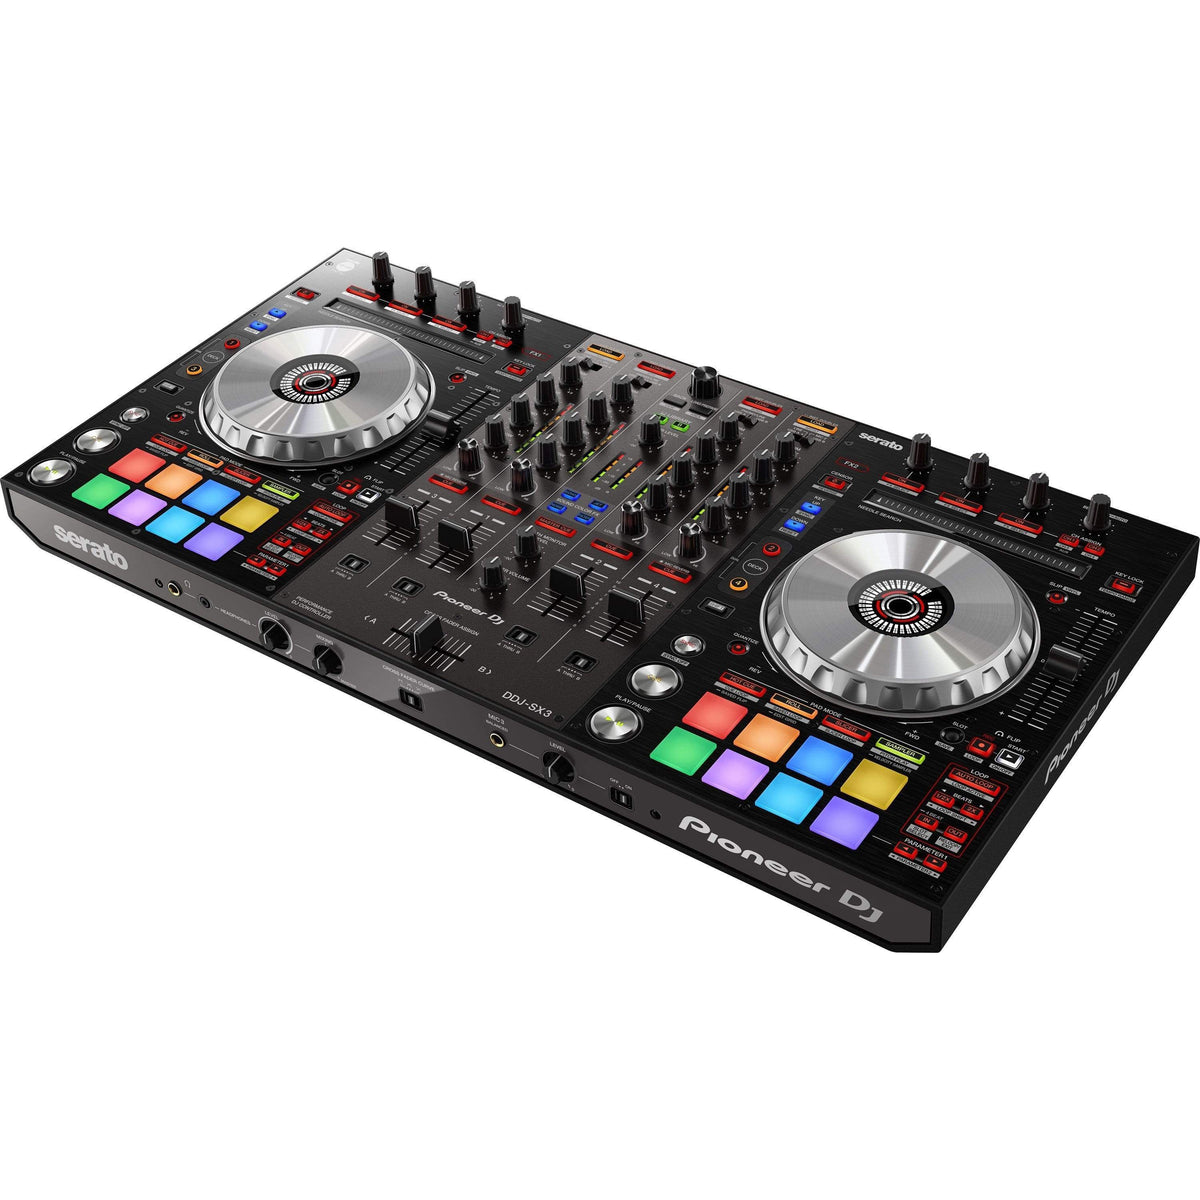 vendor-unknown DJ Equipment Pioneer DDJ-SX3 4-channel Dual Deck DJ Control (Black)